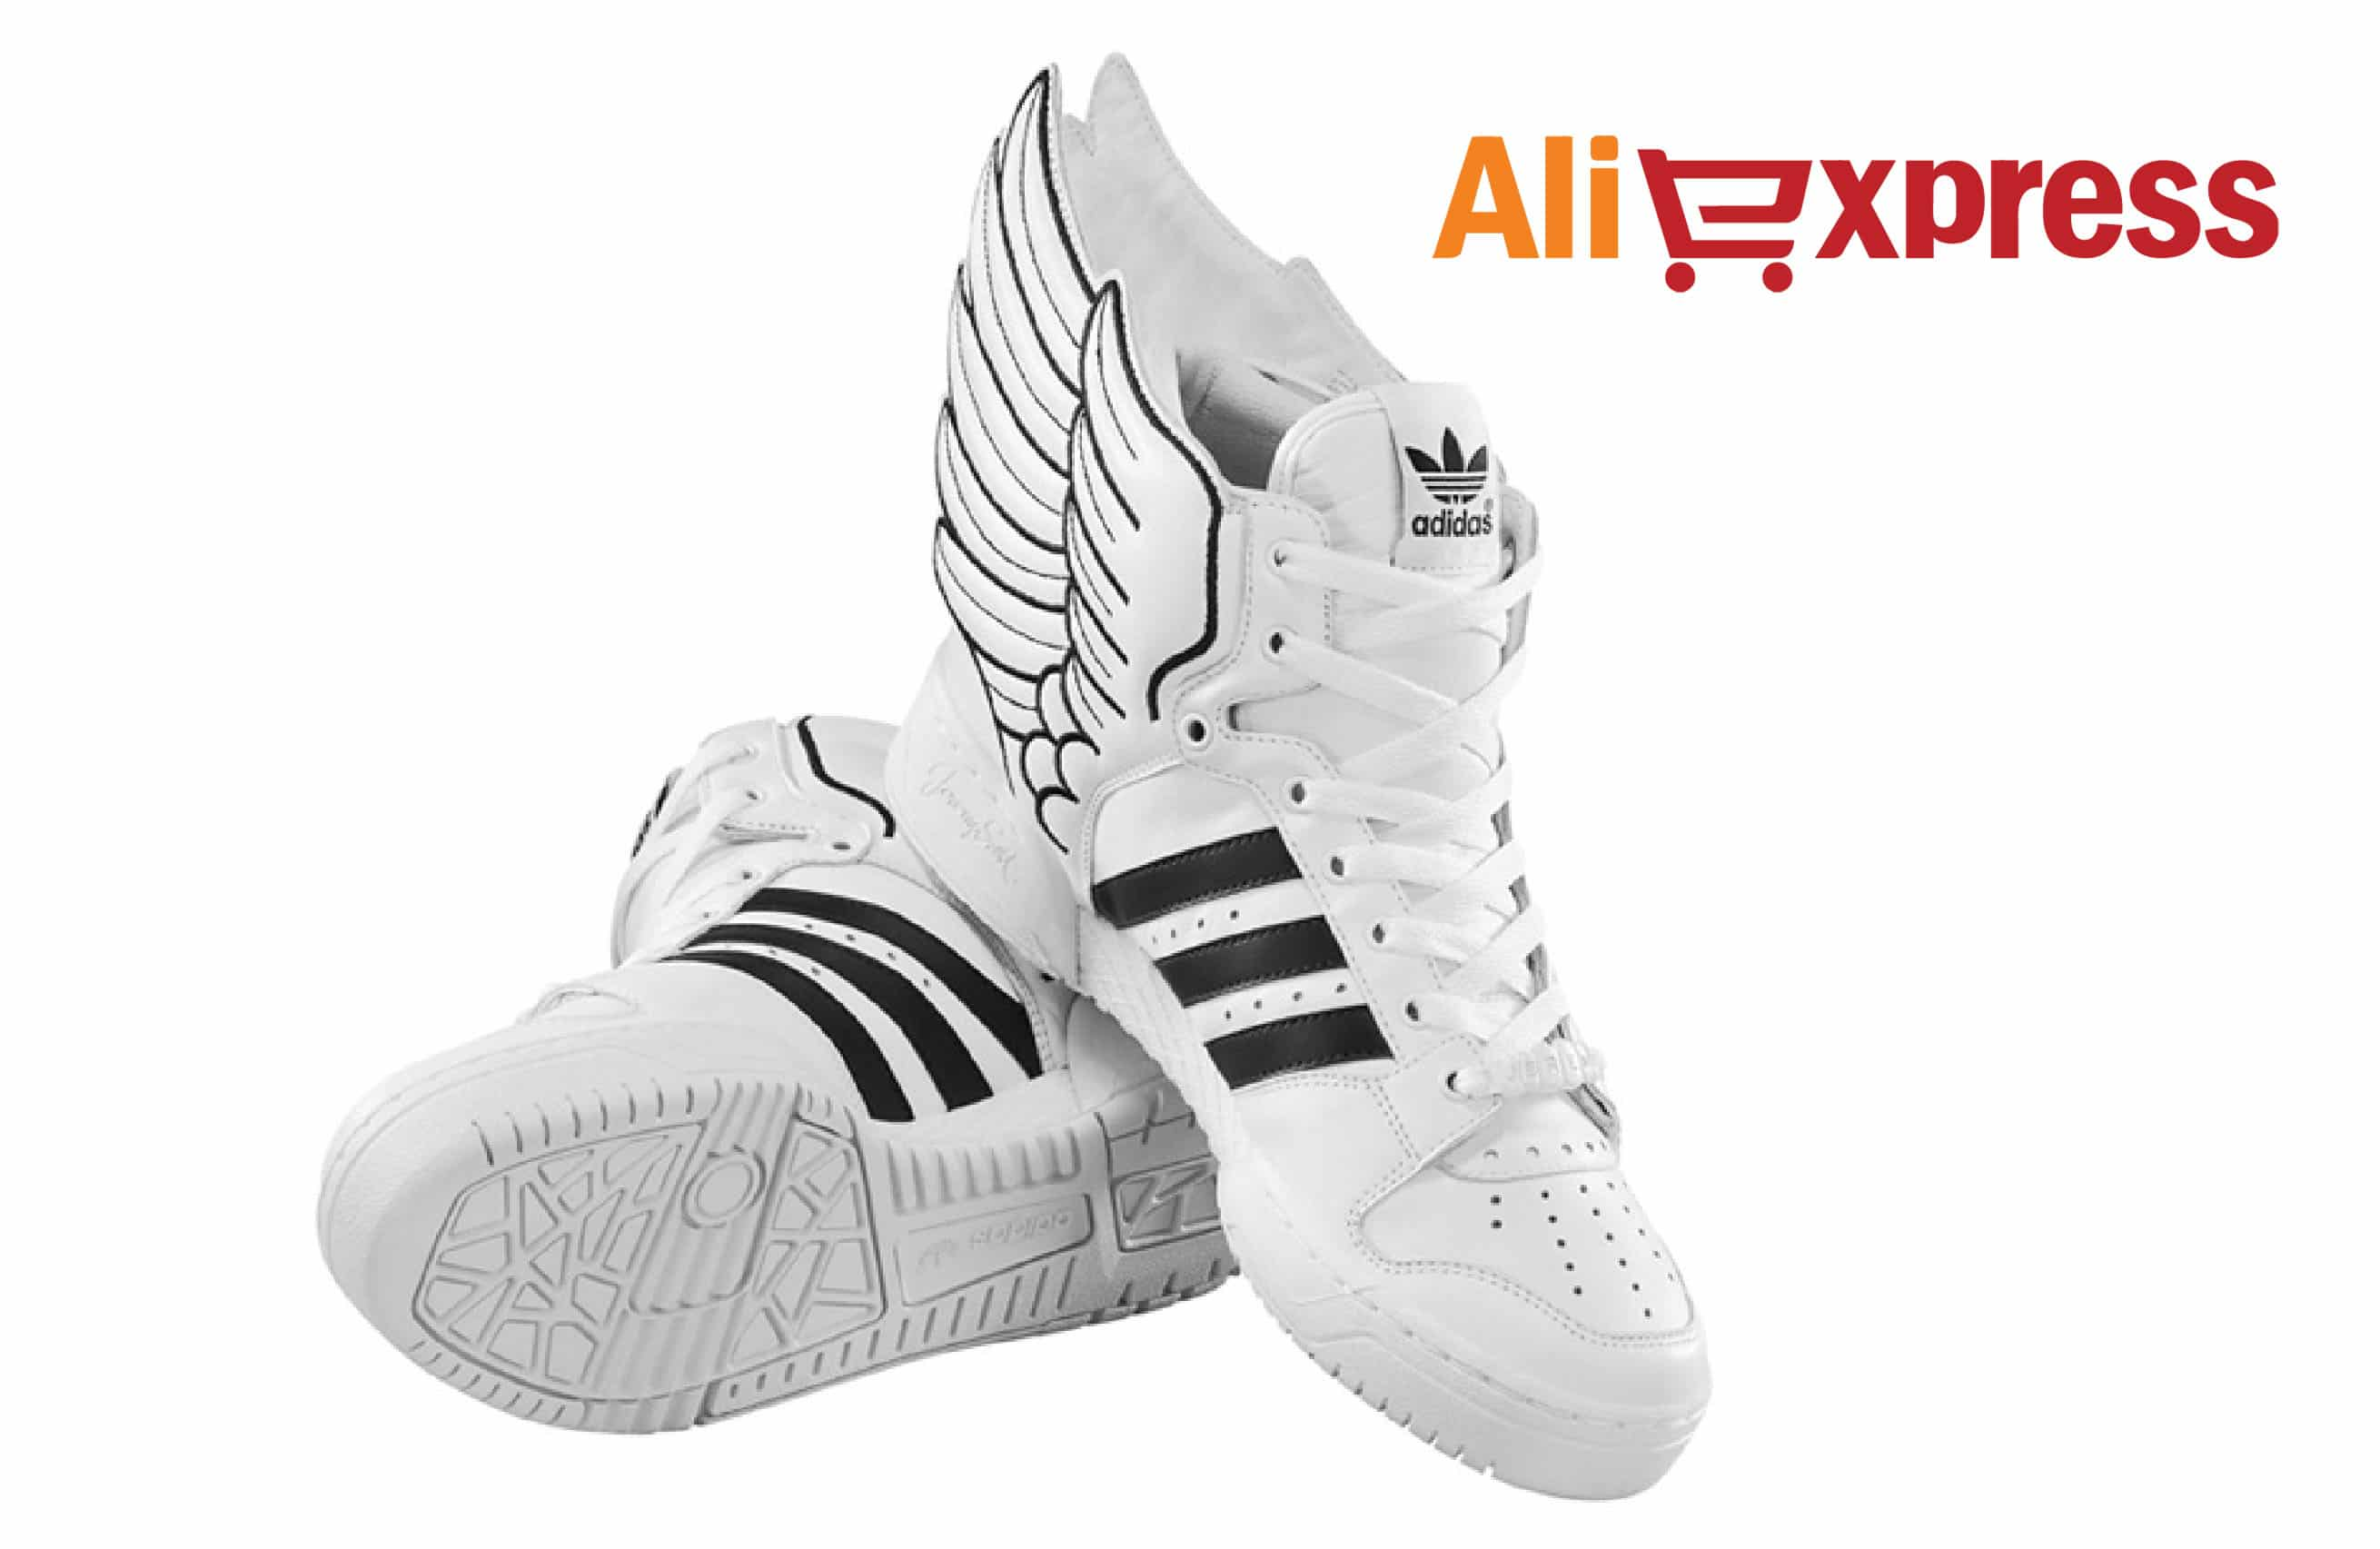 Adidas de Jeremy Scott baratas no AliExpress